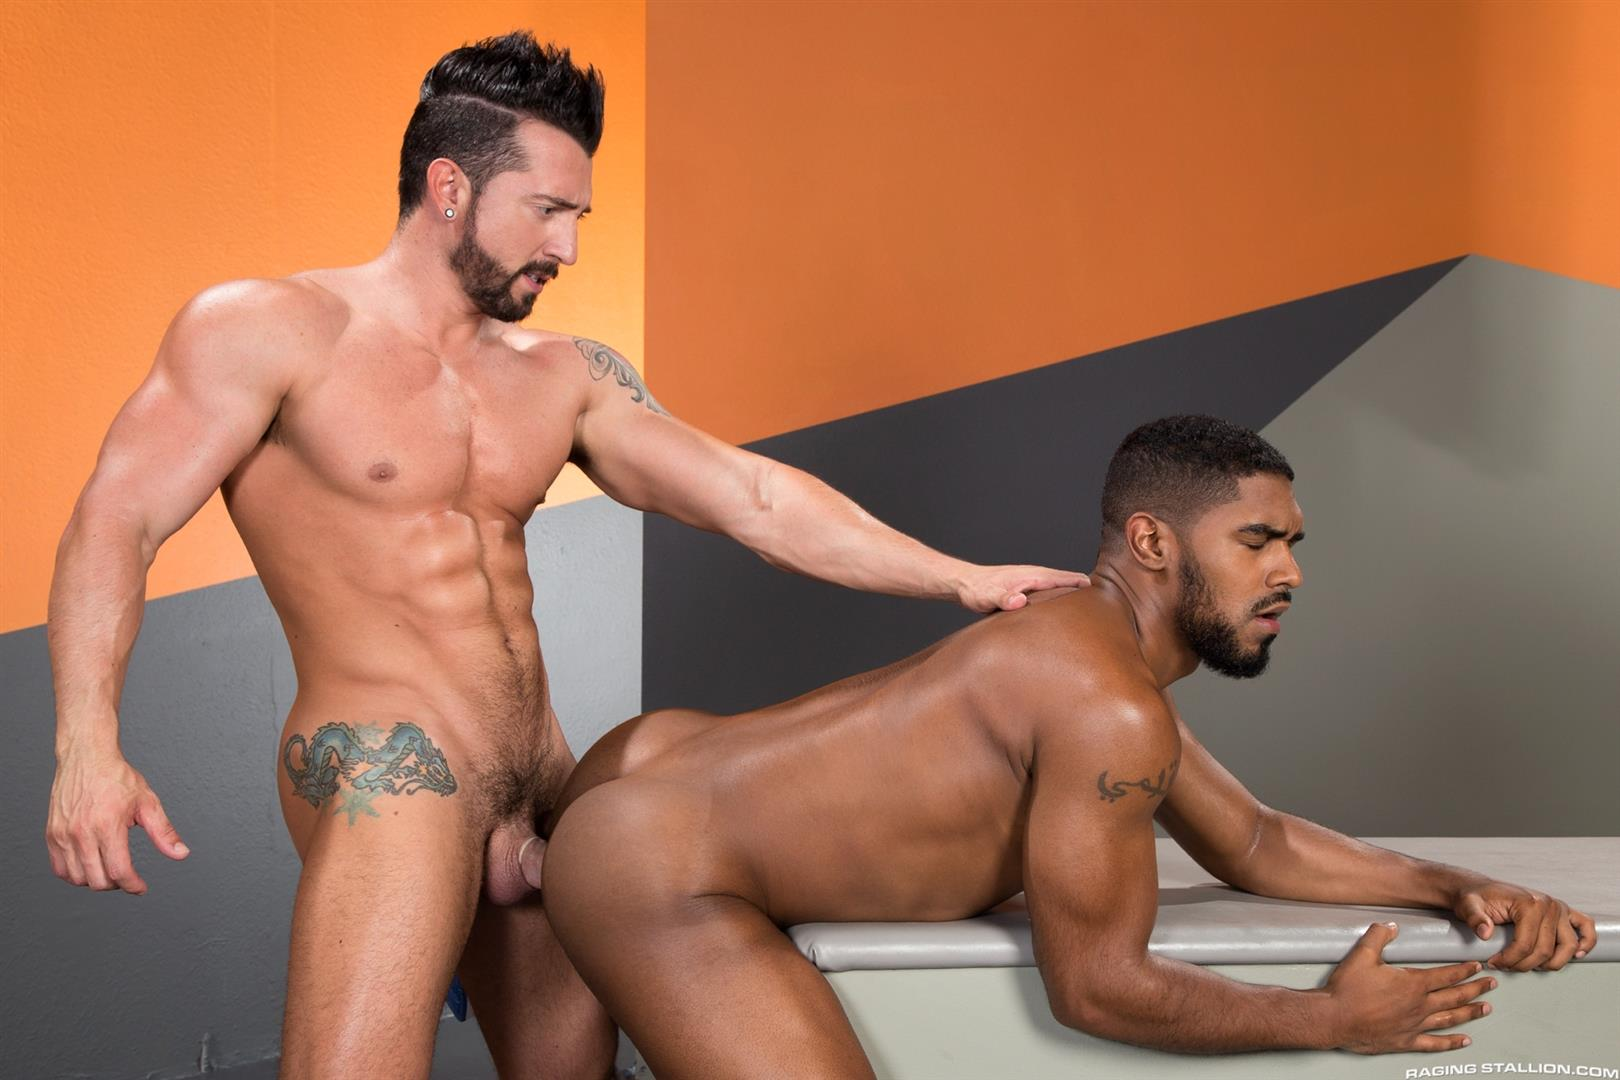 Raging Stallion Jimmy Durano and XL Interracial Gay Sex Video Free 12 Jimmy Durano Fucks XLs Black Ass With His Big Fat Cock